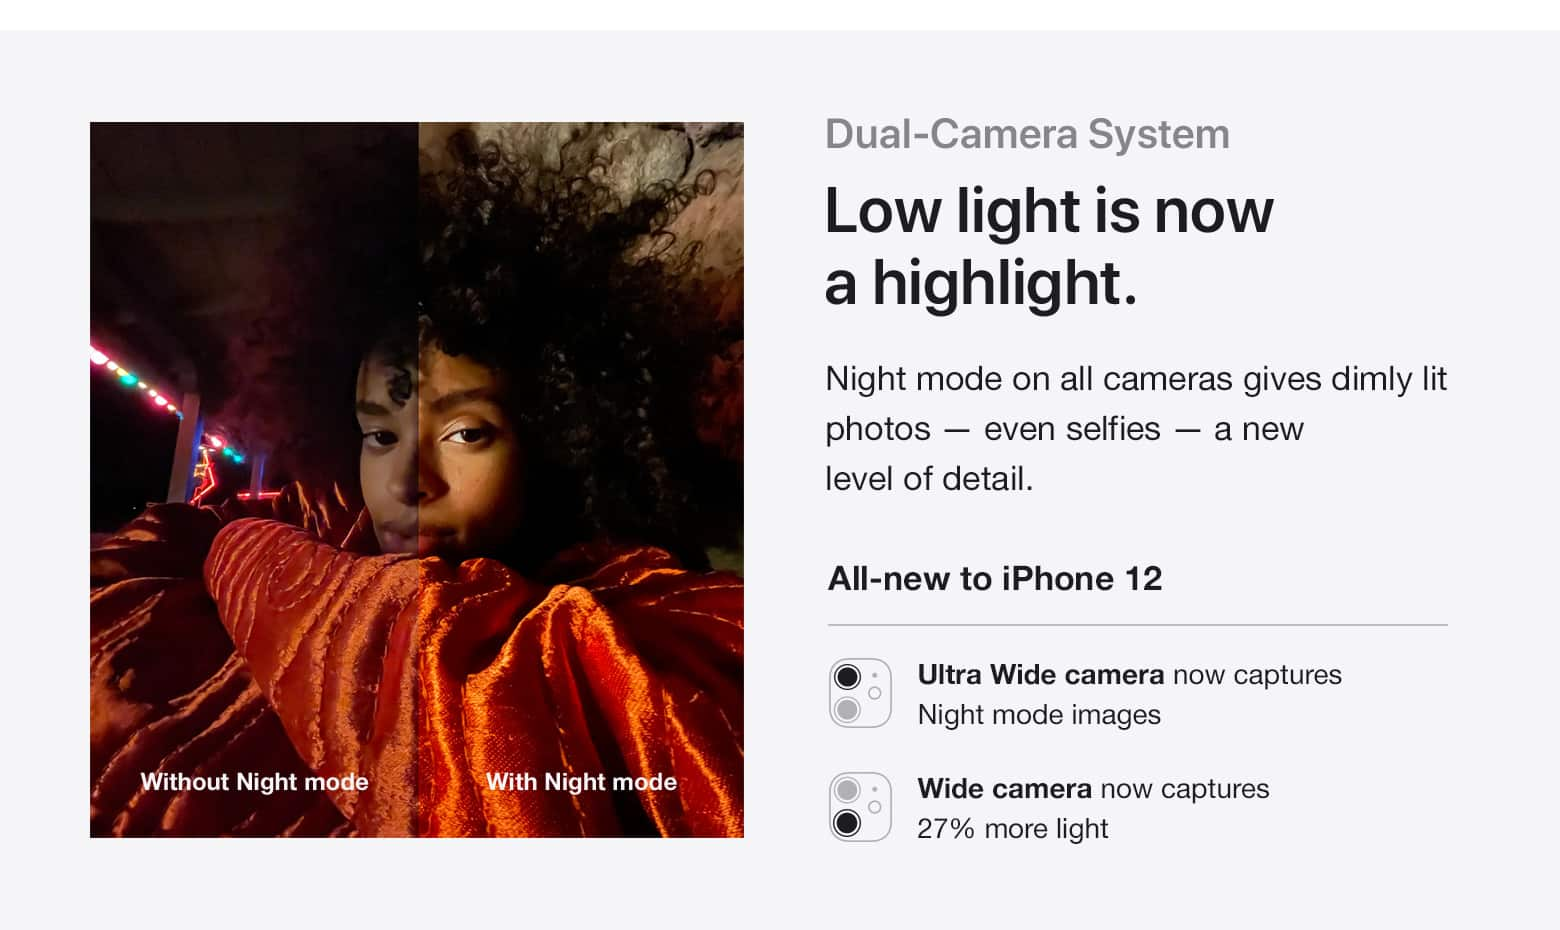 Dual-Camera System. Low light is now a highlight. Night mode on all cameras gives dimly lit photos - even selfies - a new level of detail. All-new to iPhone 12: Ultra Wire camera now captures Night mode images; Wide camera now captures 27% more light.